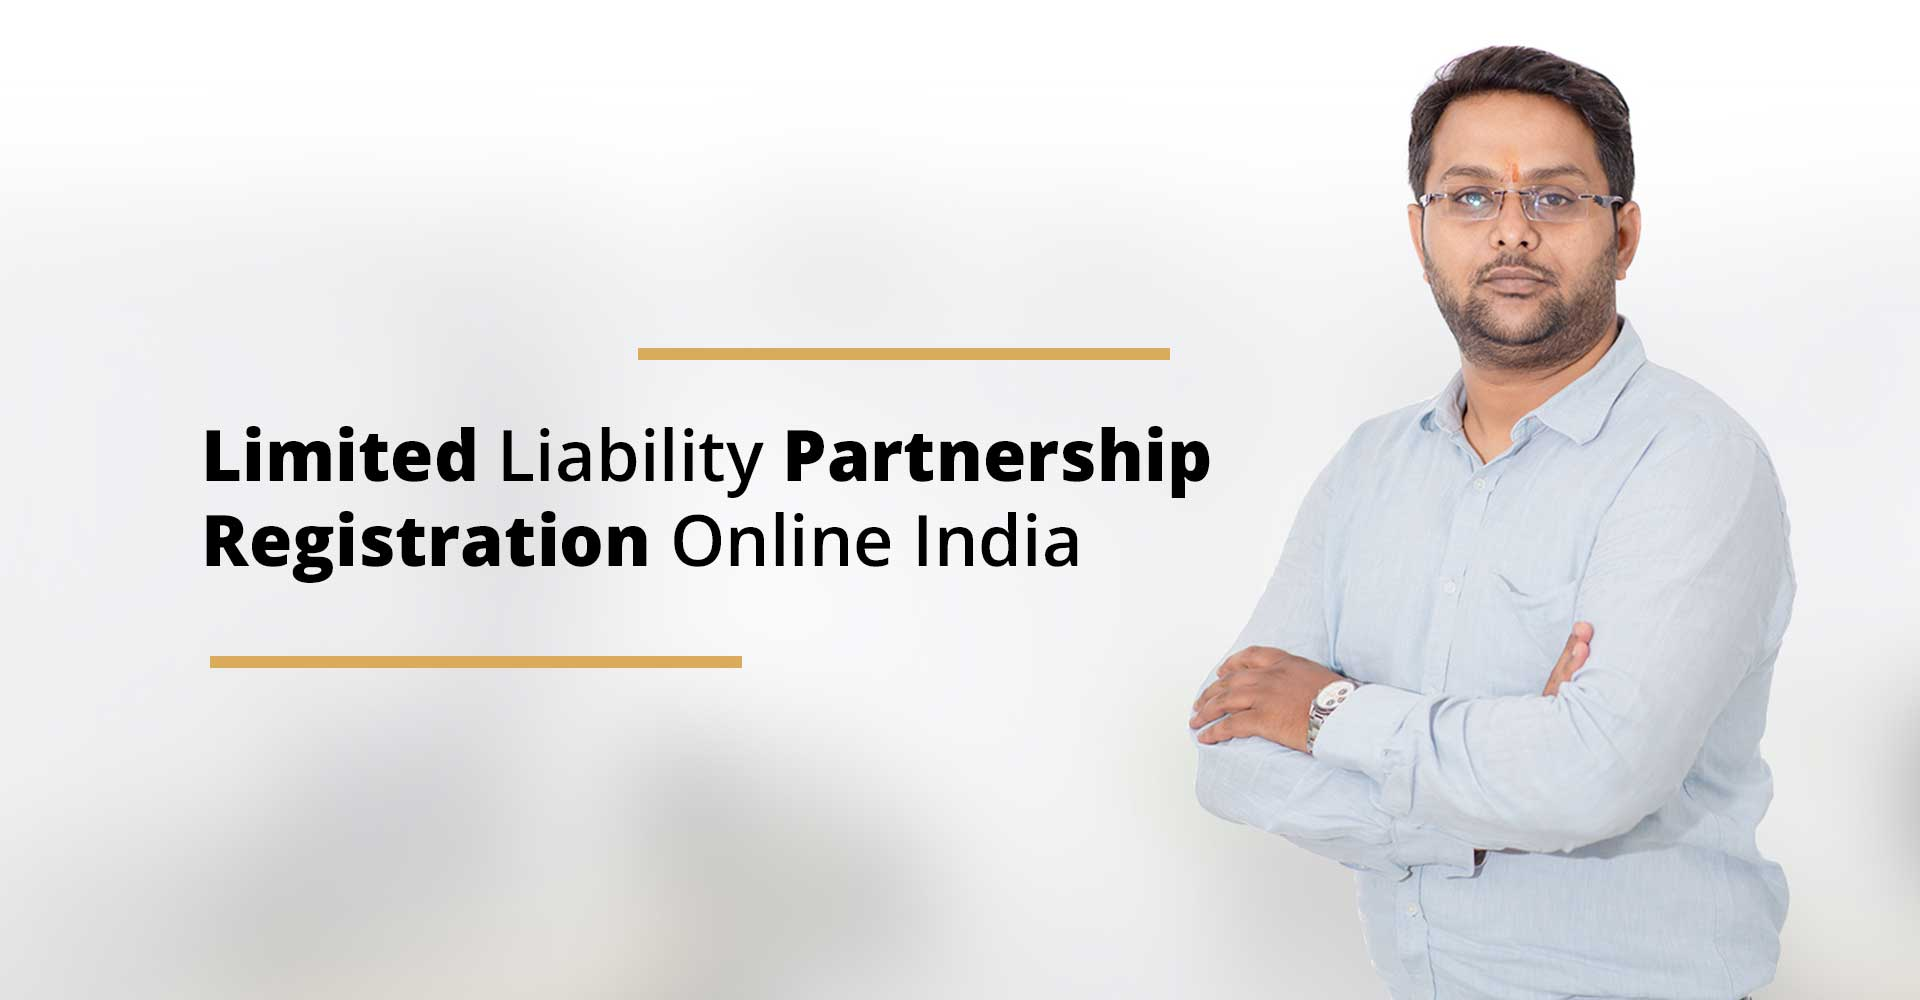 Limited Liability Partnership Registration Online India